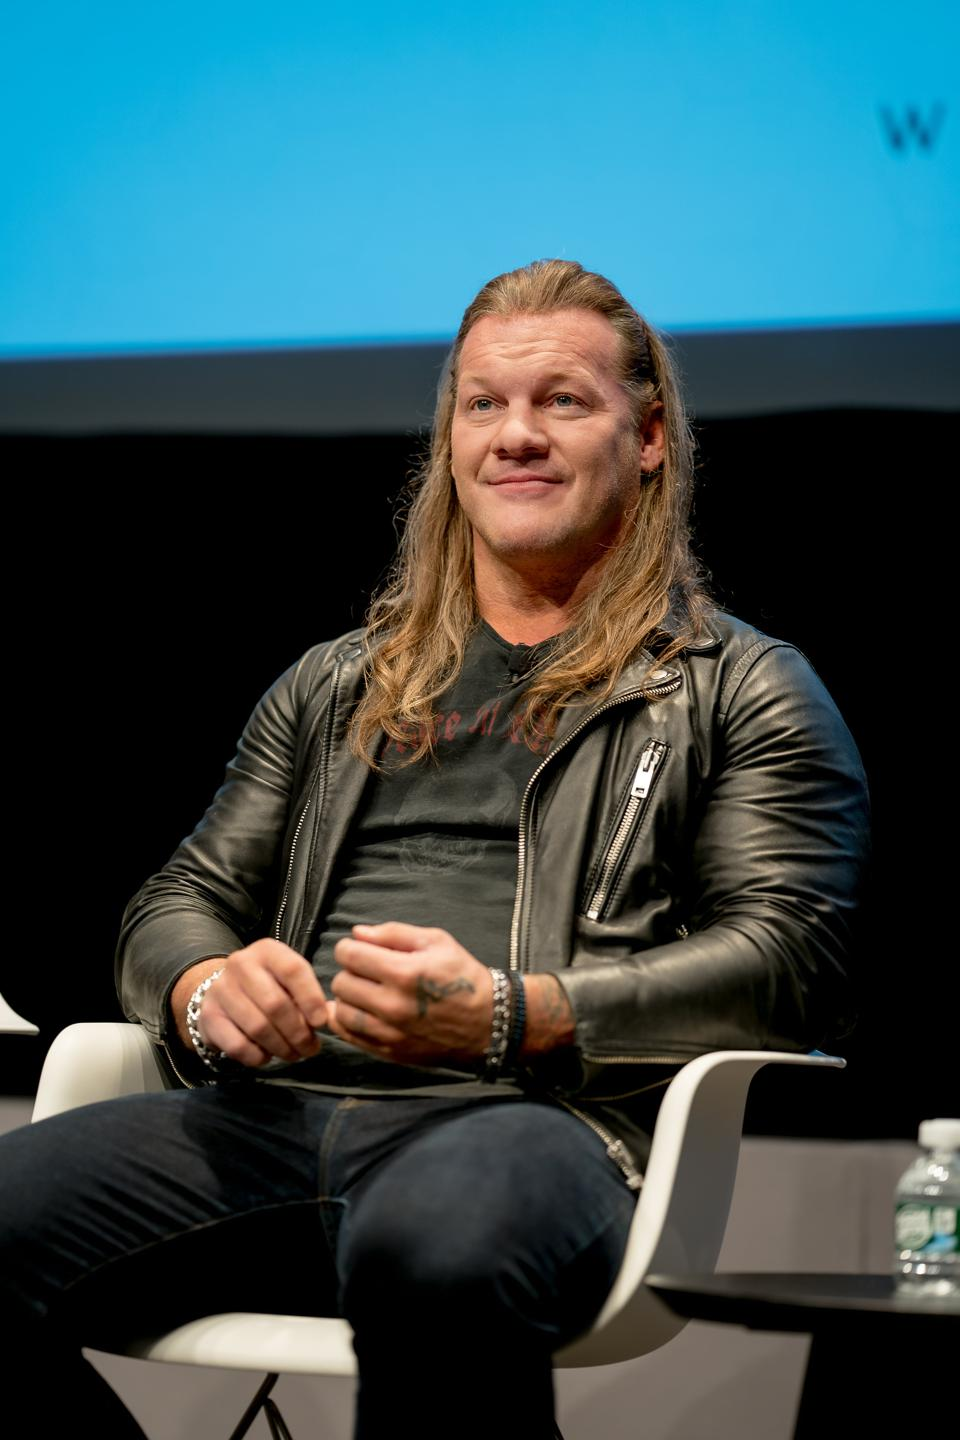 Chris Jericho at IAB Podcast Upfront for Westwood One Panel discussion